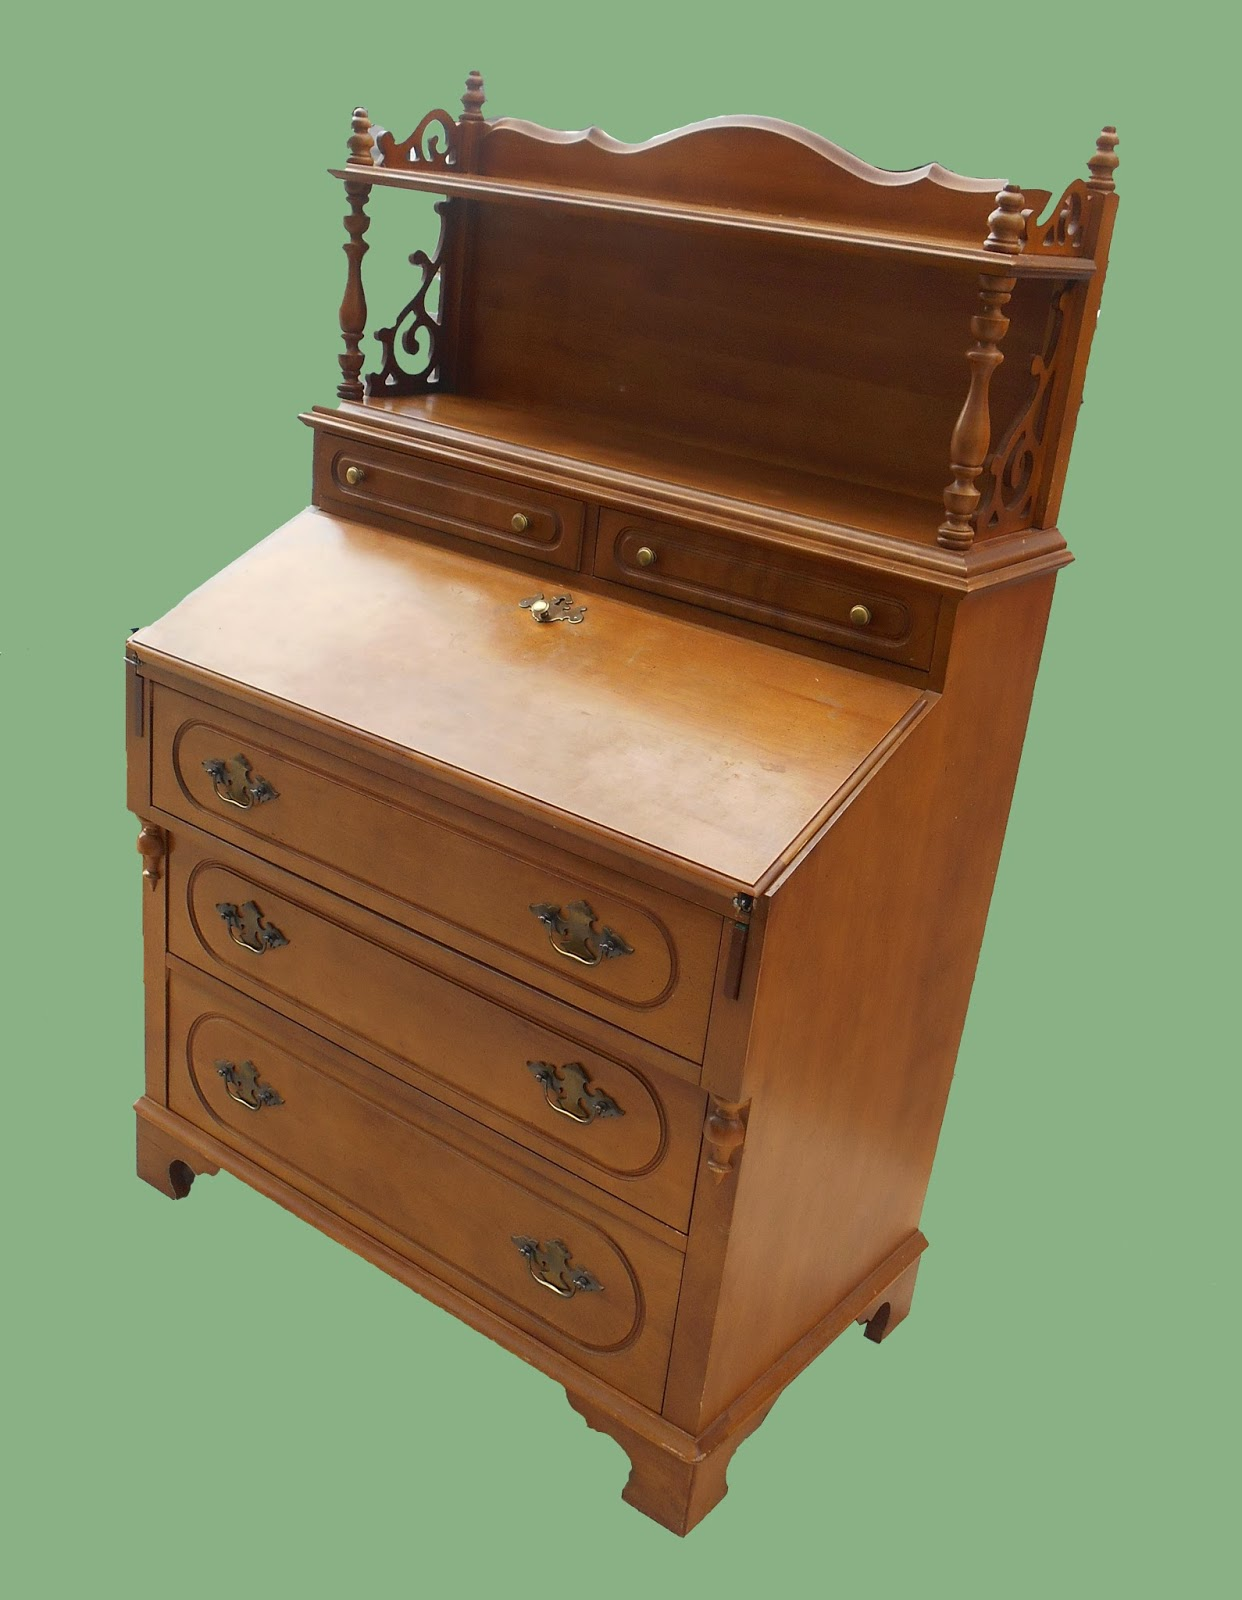 Uhuru furniture collectibles french provencal secretary for Reduced furniture